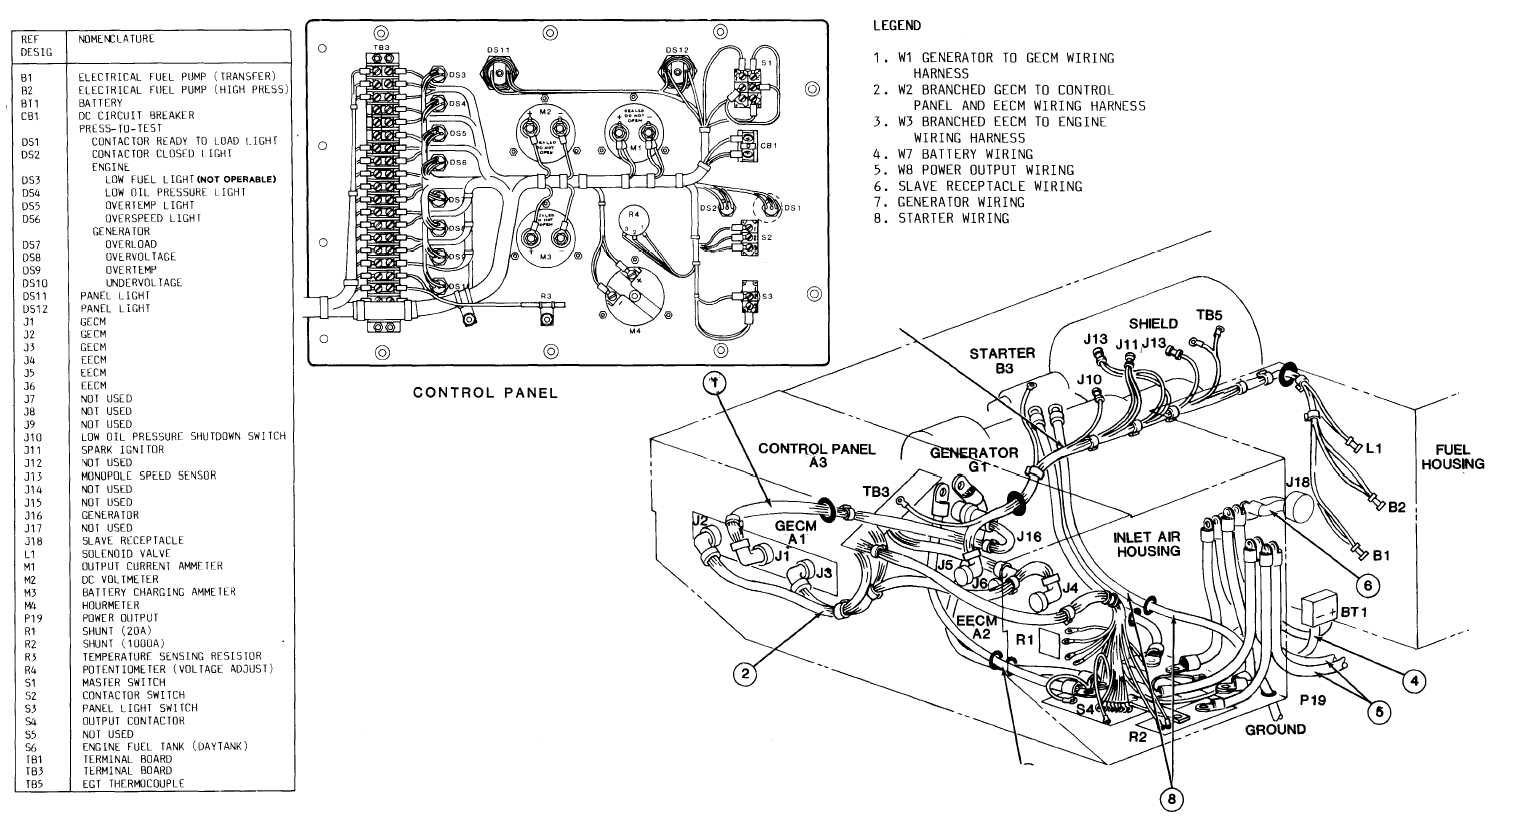 farmall 140 12 volt wiring diagram headphone jack pinout female conversion h get free